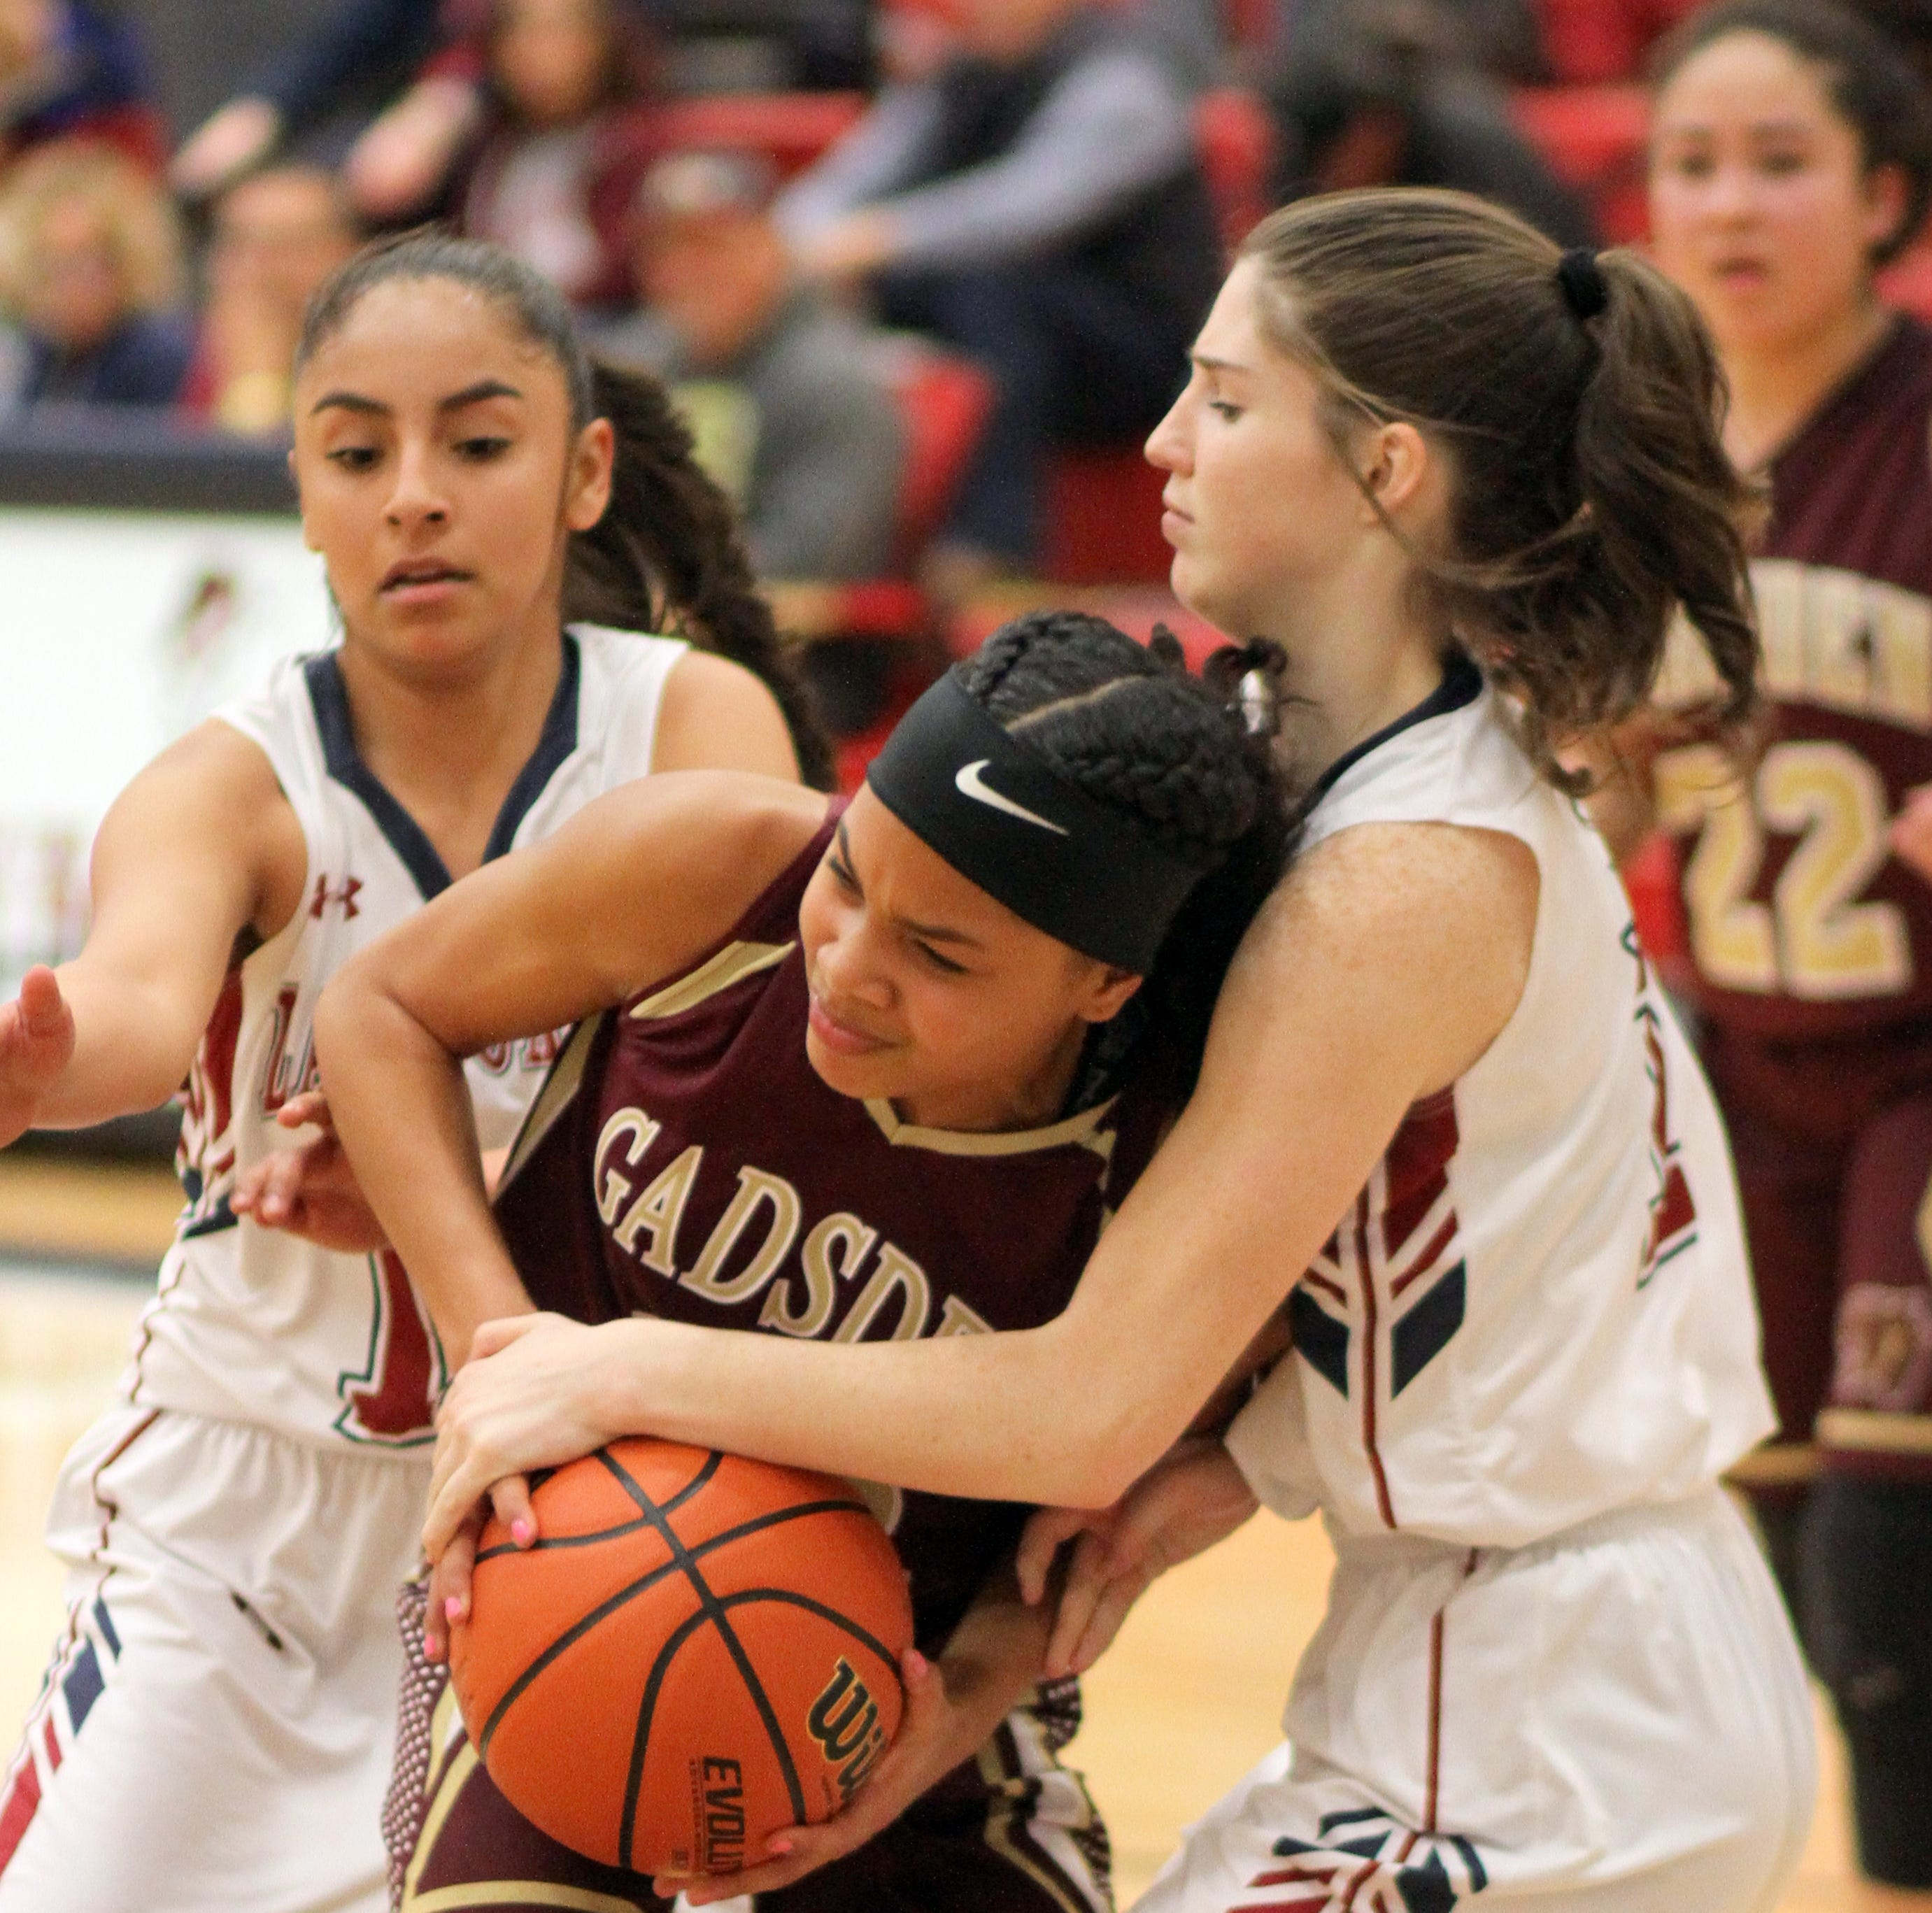 Deming High Lady 'Cat reserves put icing on win over Gadsden High Panthers